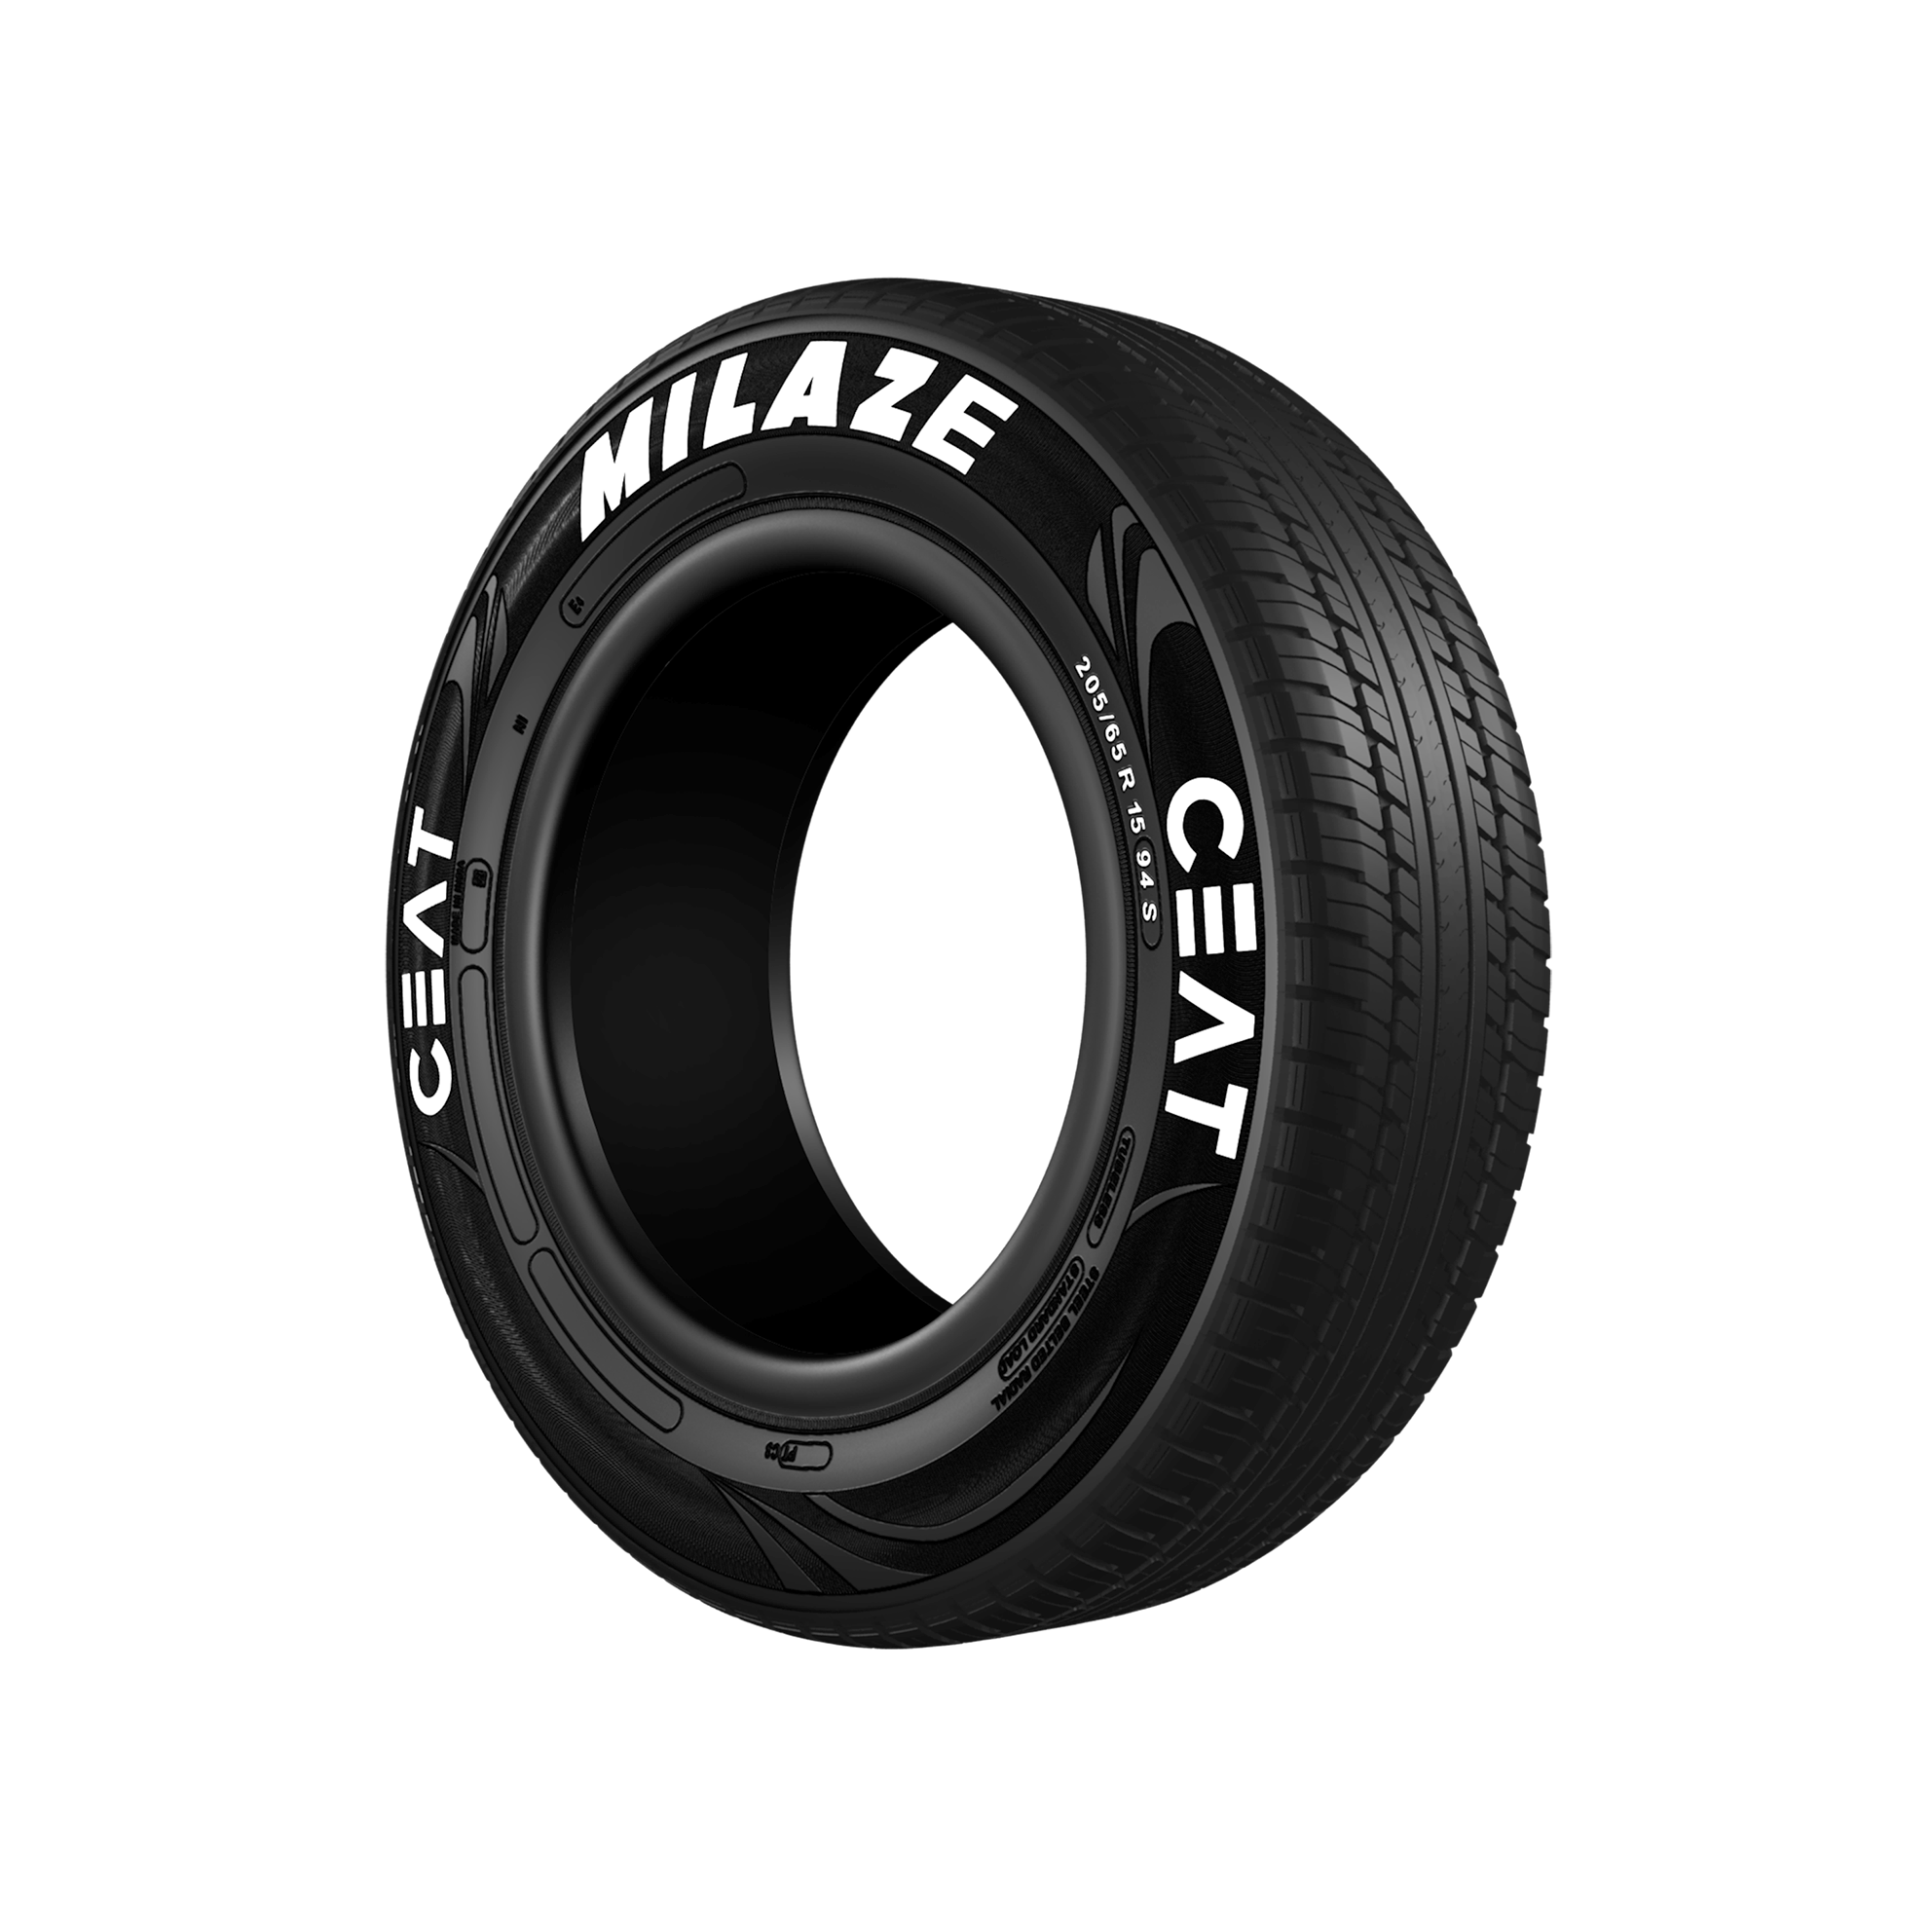 CEAT MILAZE 155/70 R 13 Requires Tube 75 T Car Tyre